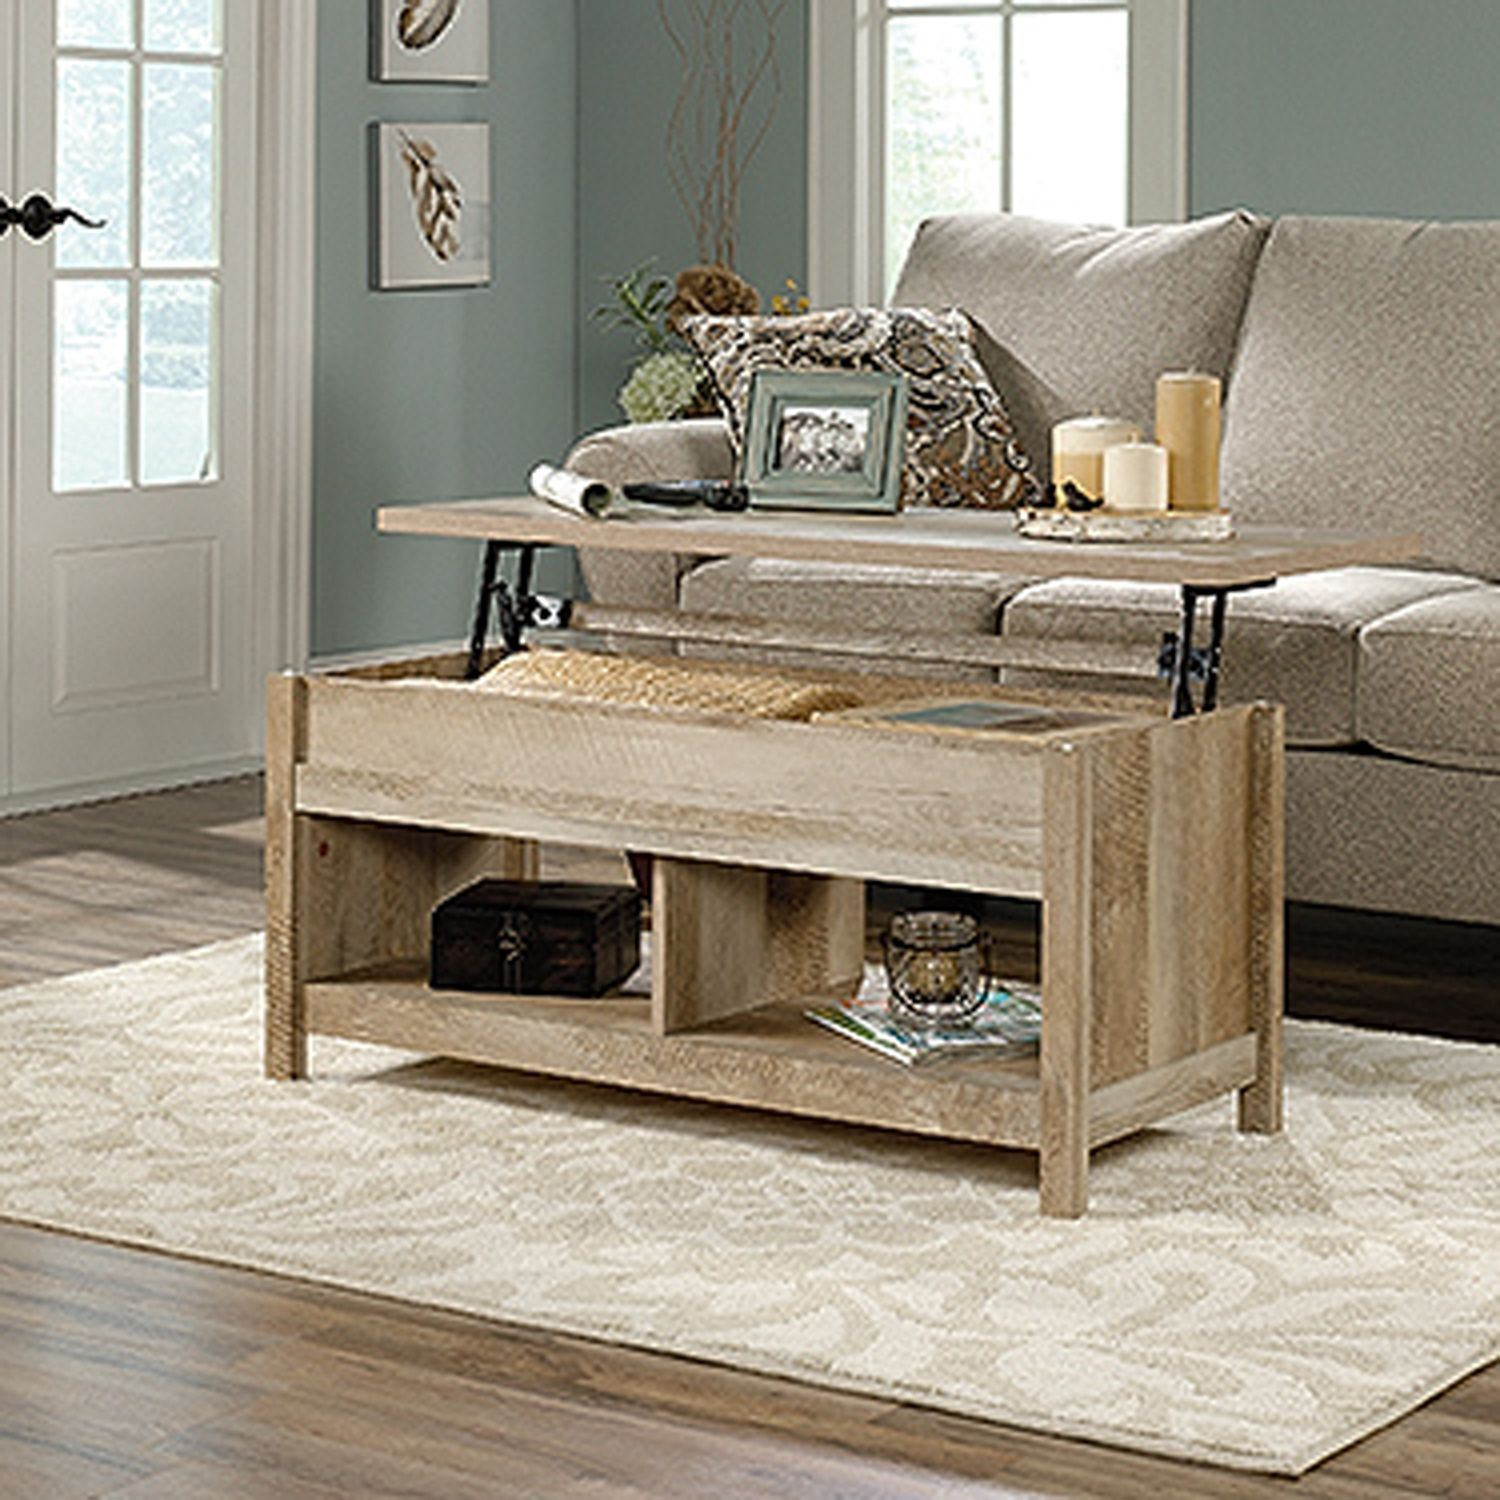 Picture of Cannery Bridge Lift Top Coffee Table Lintel Oak *